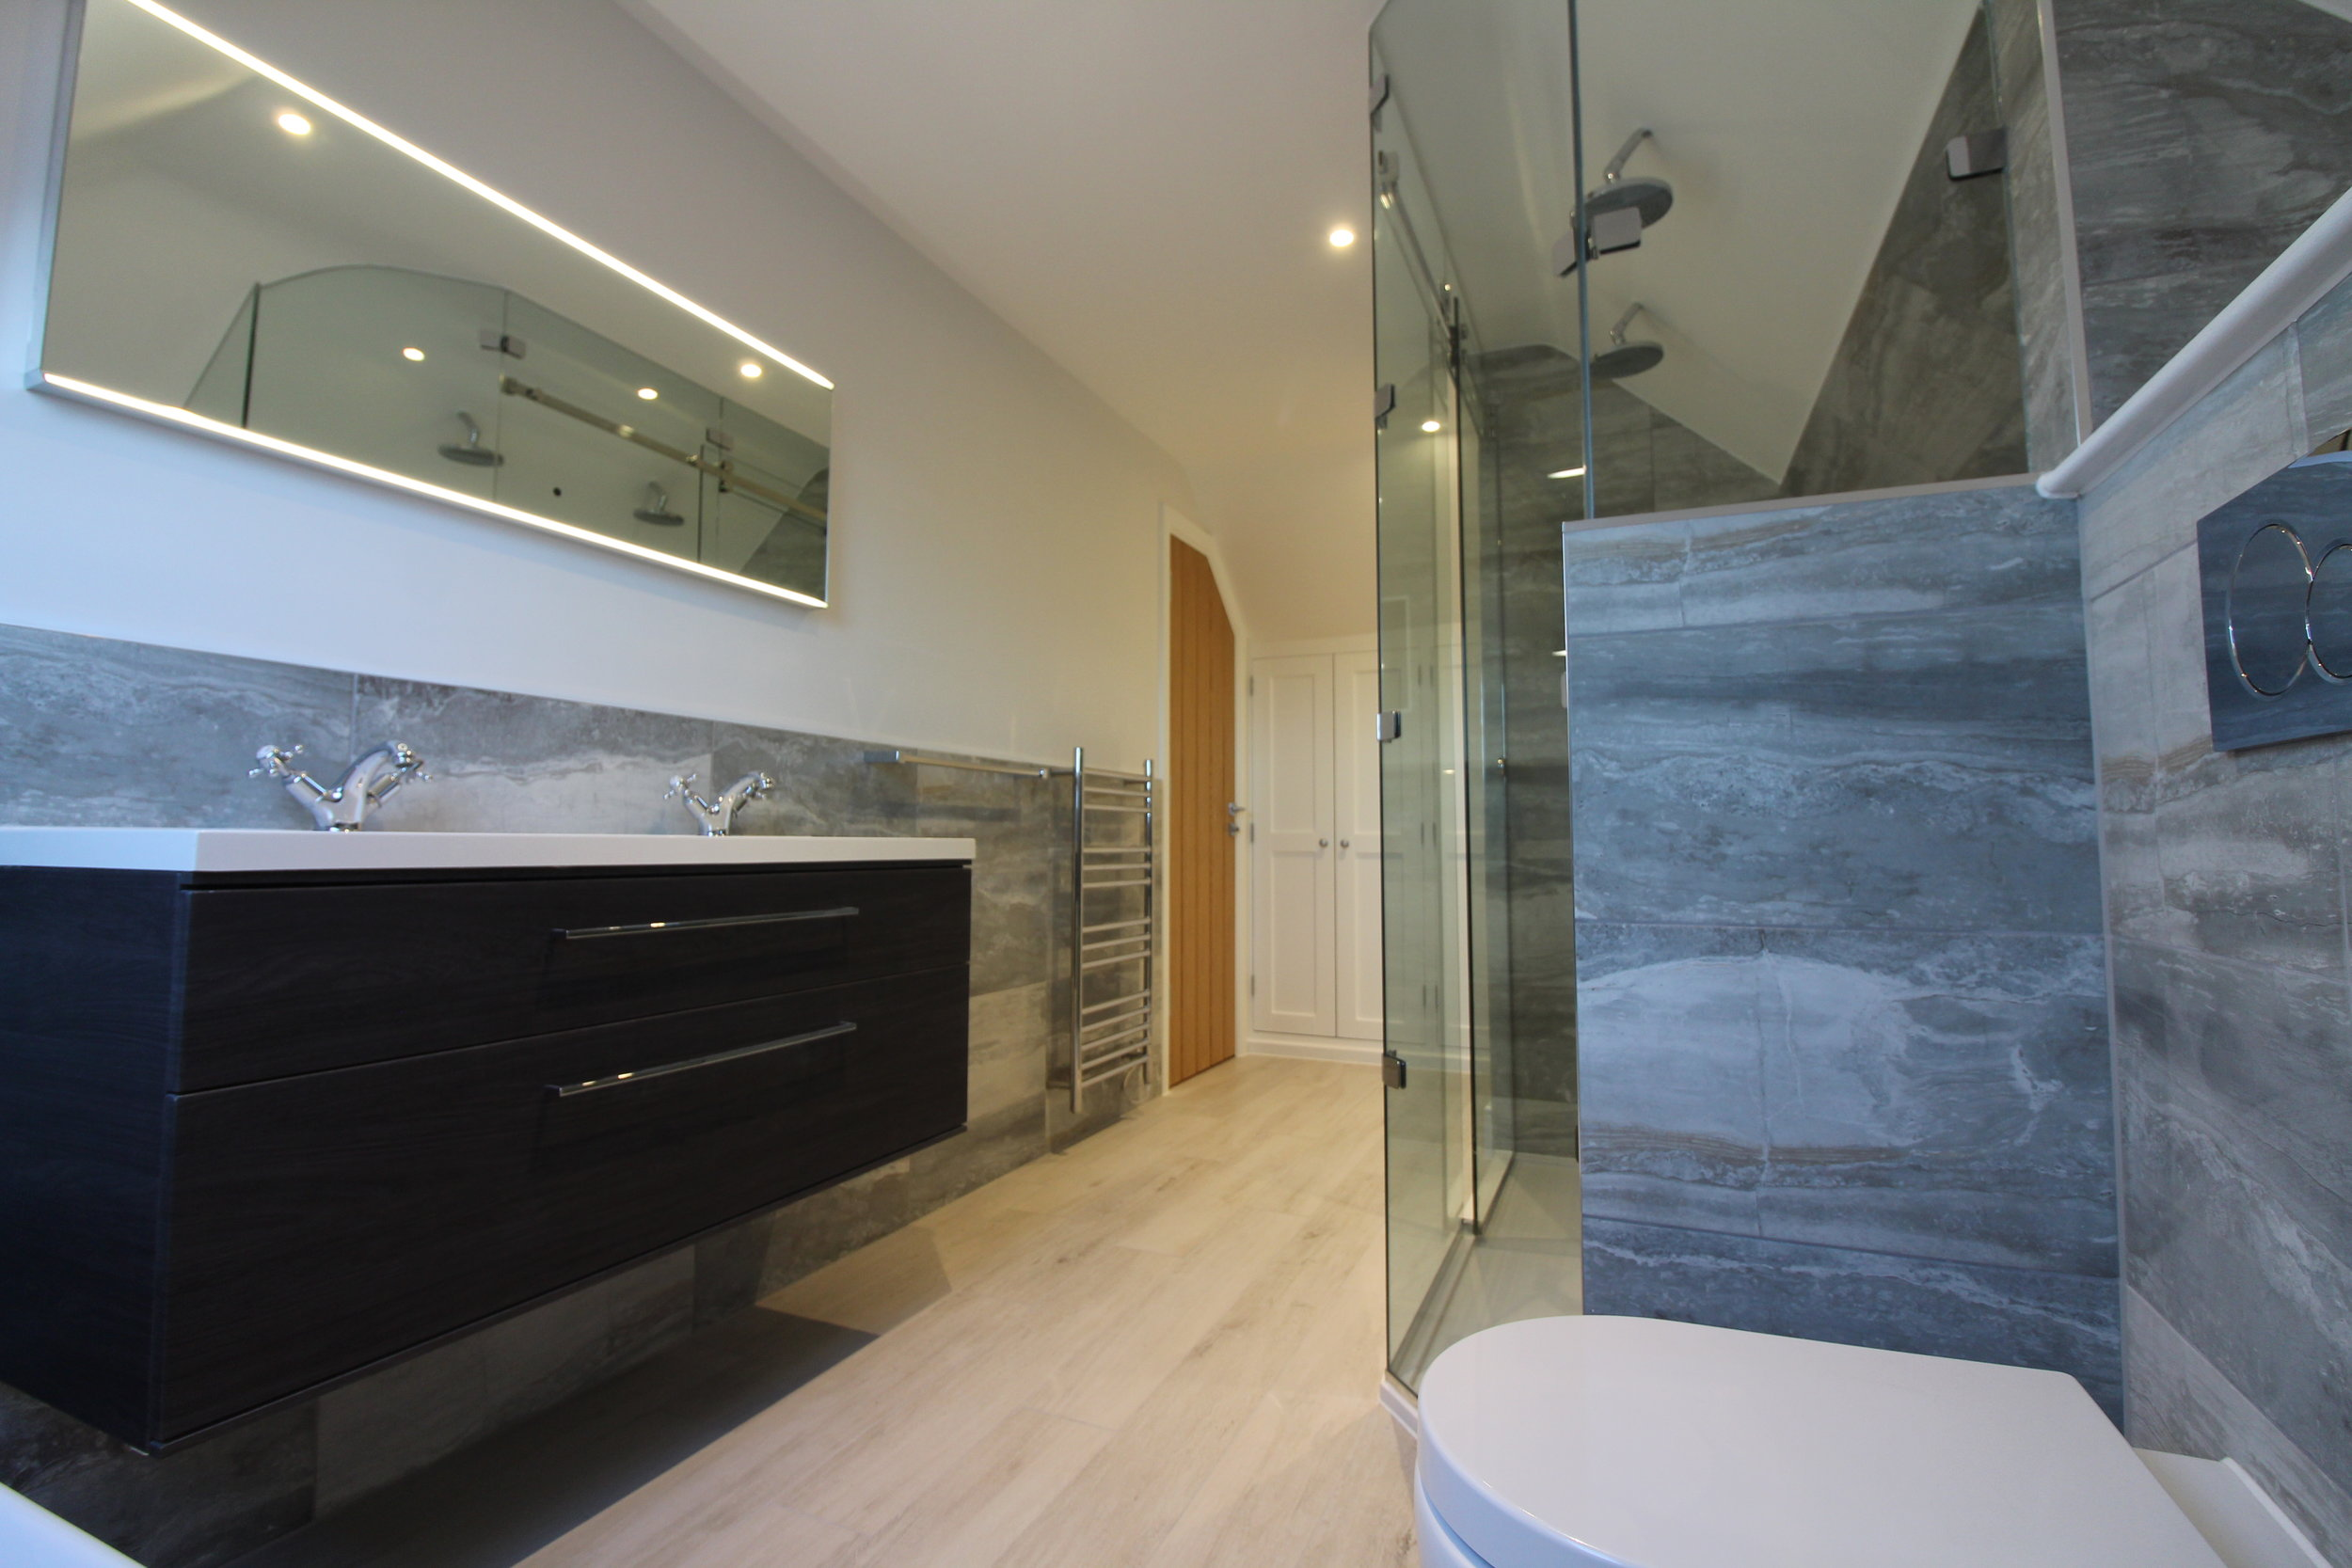 The bathroom is simple, light and sleek, with a wall hung 'his and hers' basin unit.